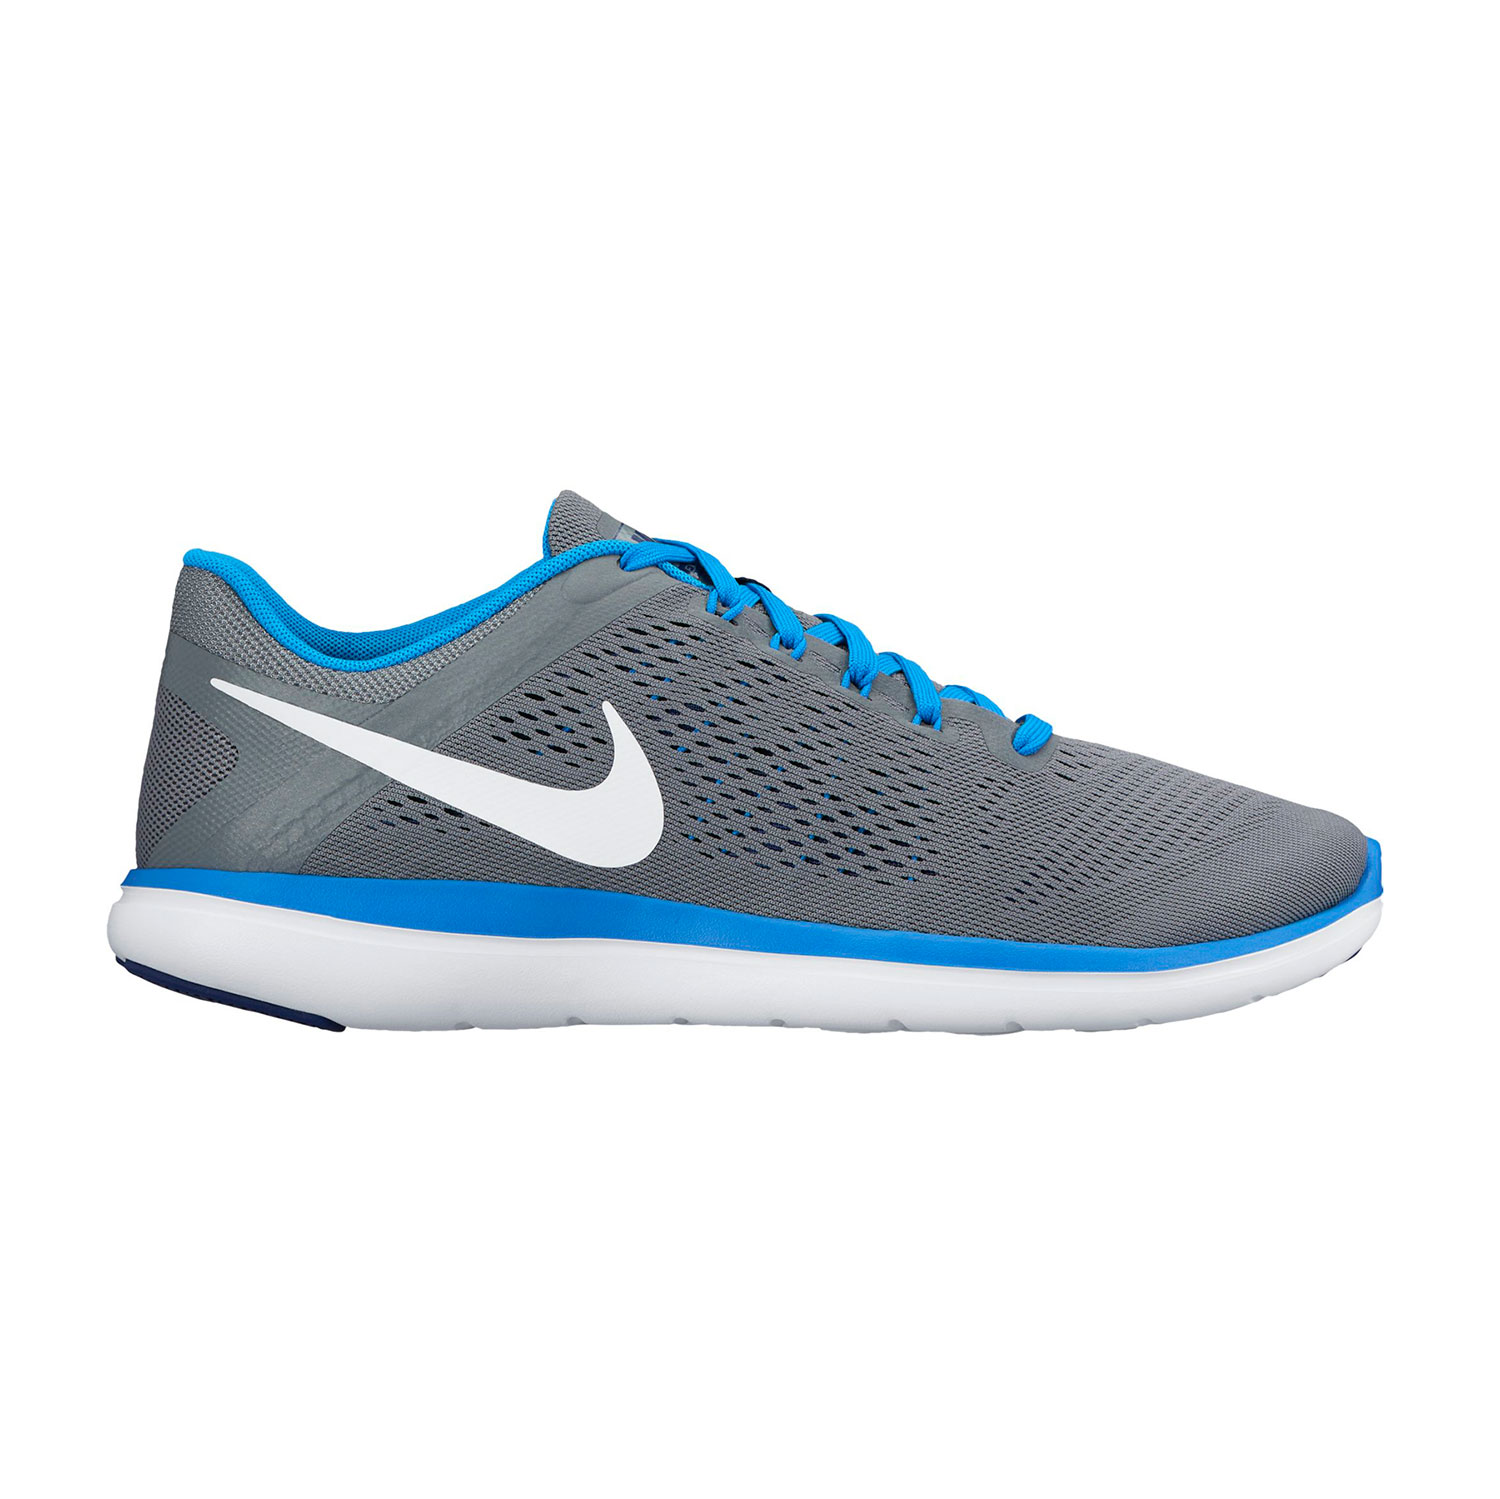 Top Rated Nike Cross Training Shoes